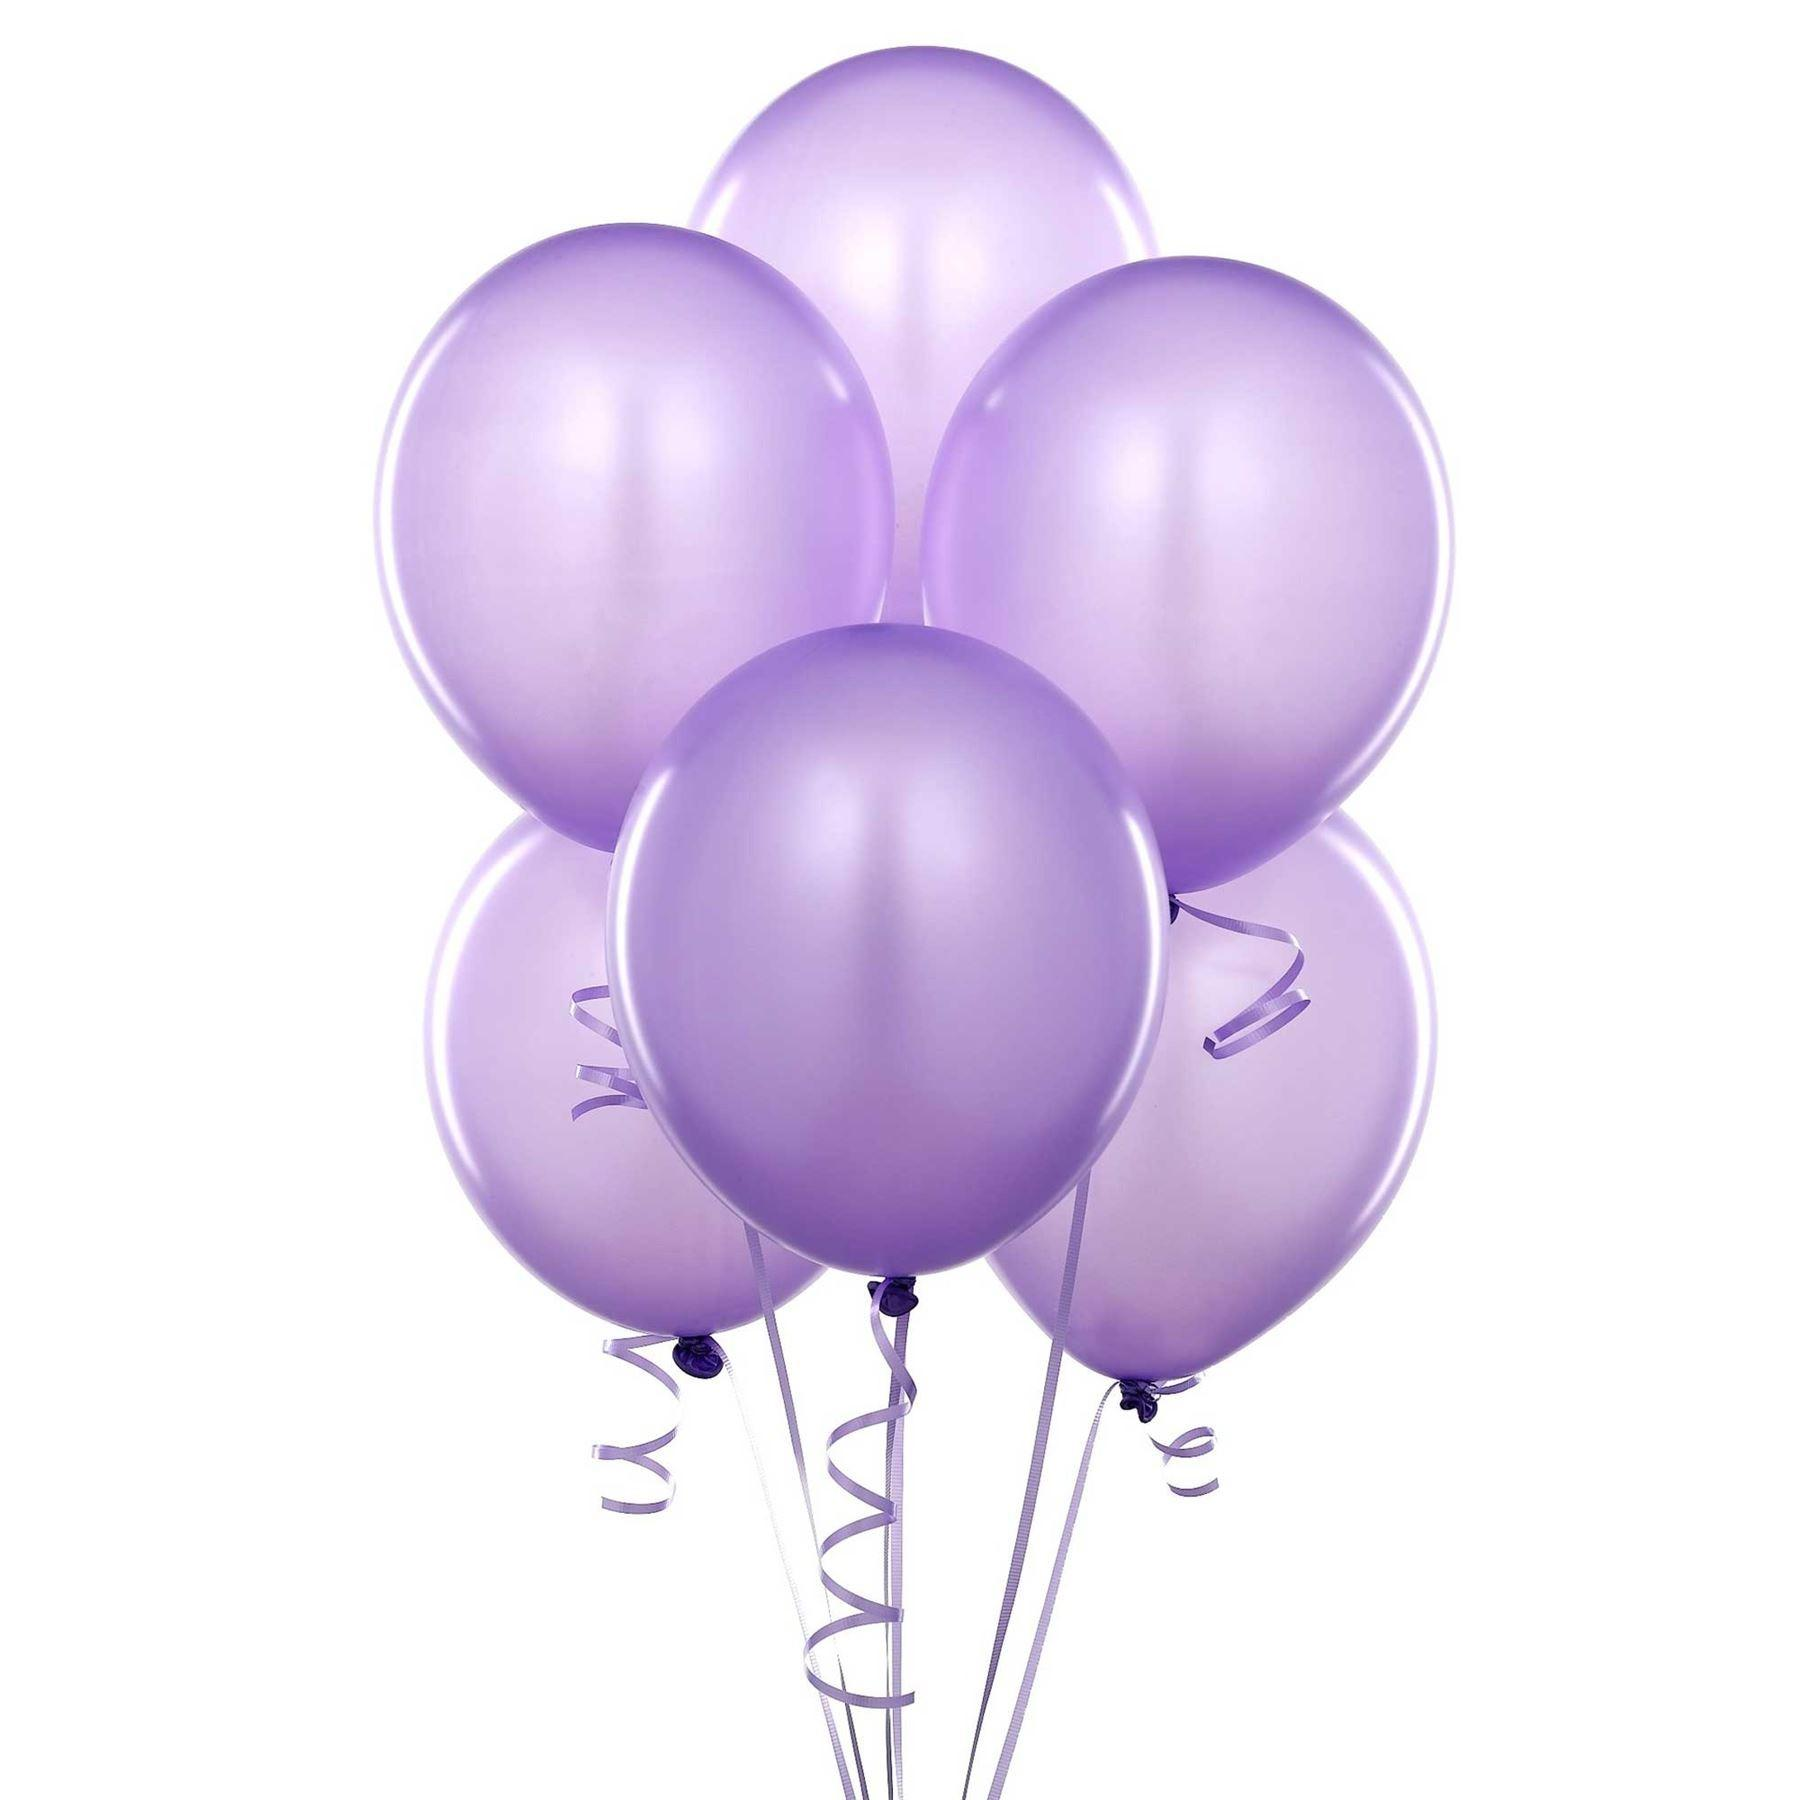 Plain Latex Balloons Party Decorations Wedding